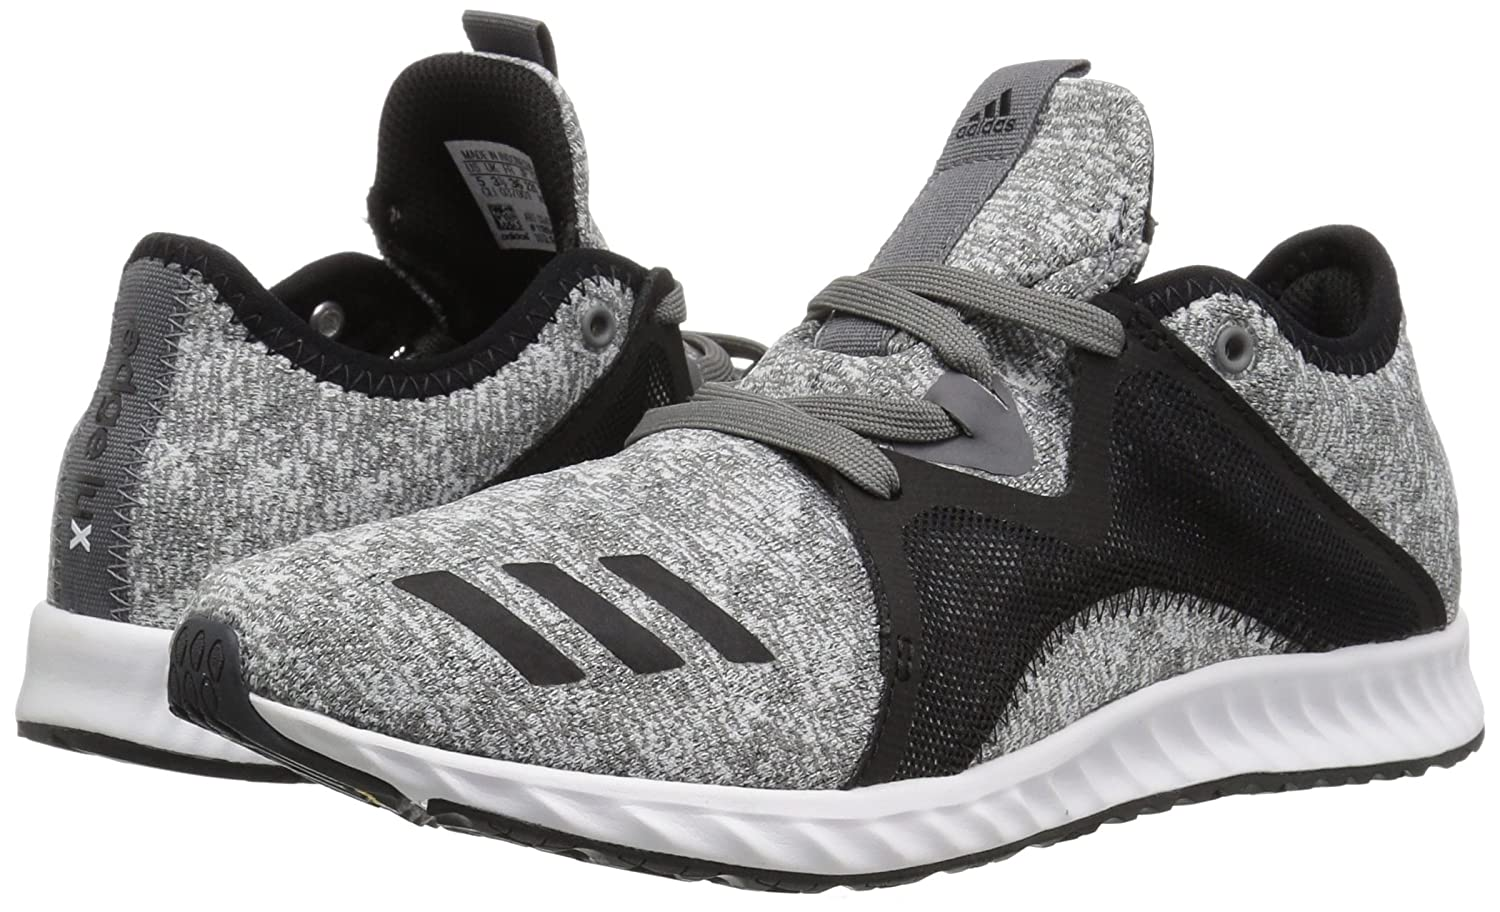 adidas Women's Edge Lux 2 W Four/Core B071LF7WSW 6 B(M) US|Grey Four/Core W Black/White e615a3